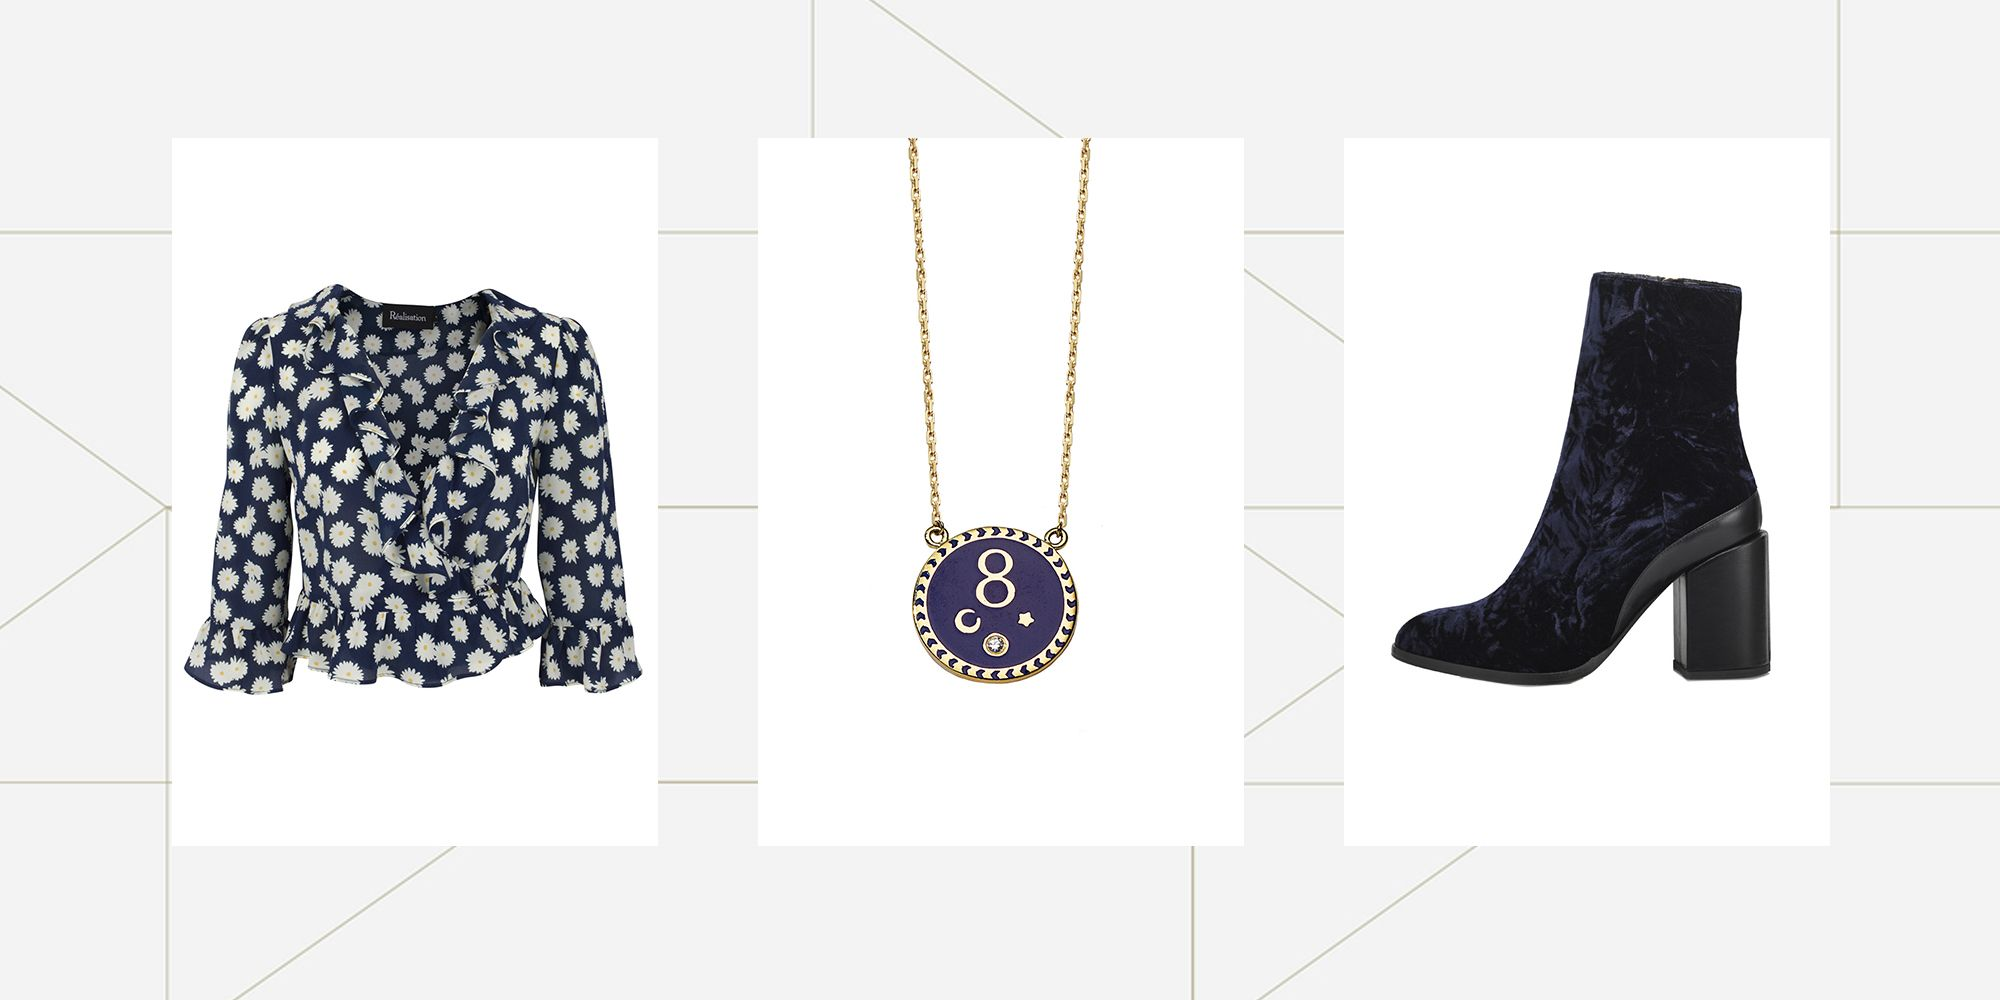 Best New Fashion Designers For 2017 - Emerging Fashion Labels You Should  Know dbf800a01c57